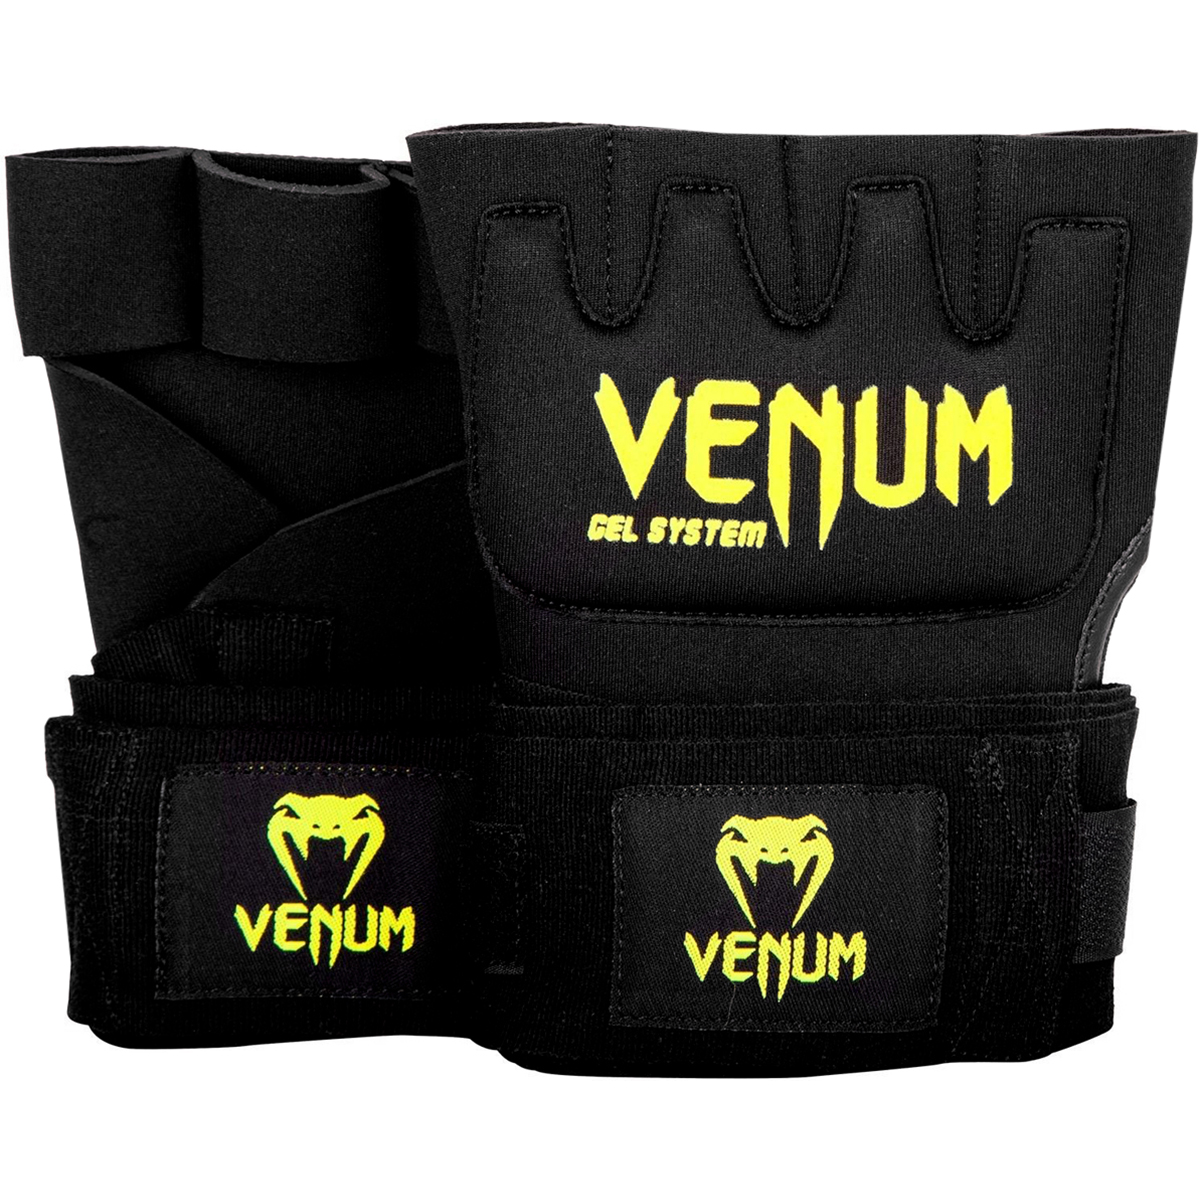 Venum-Kontact-Protective-Shock-Absorbing-Gel-MMA-Glove-Wraps thumbnail 32